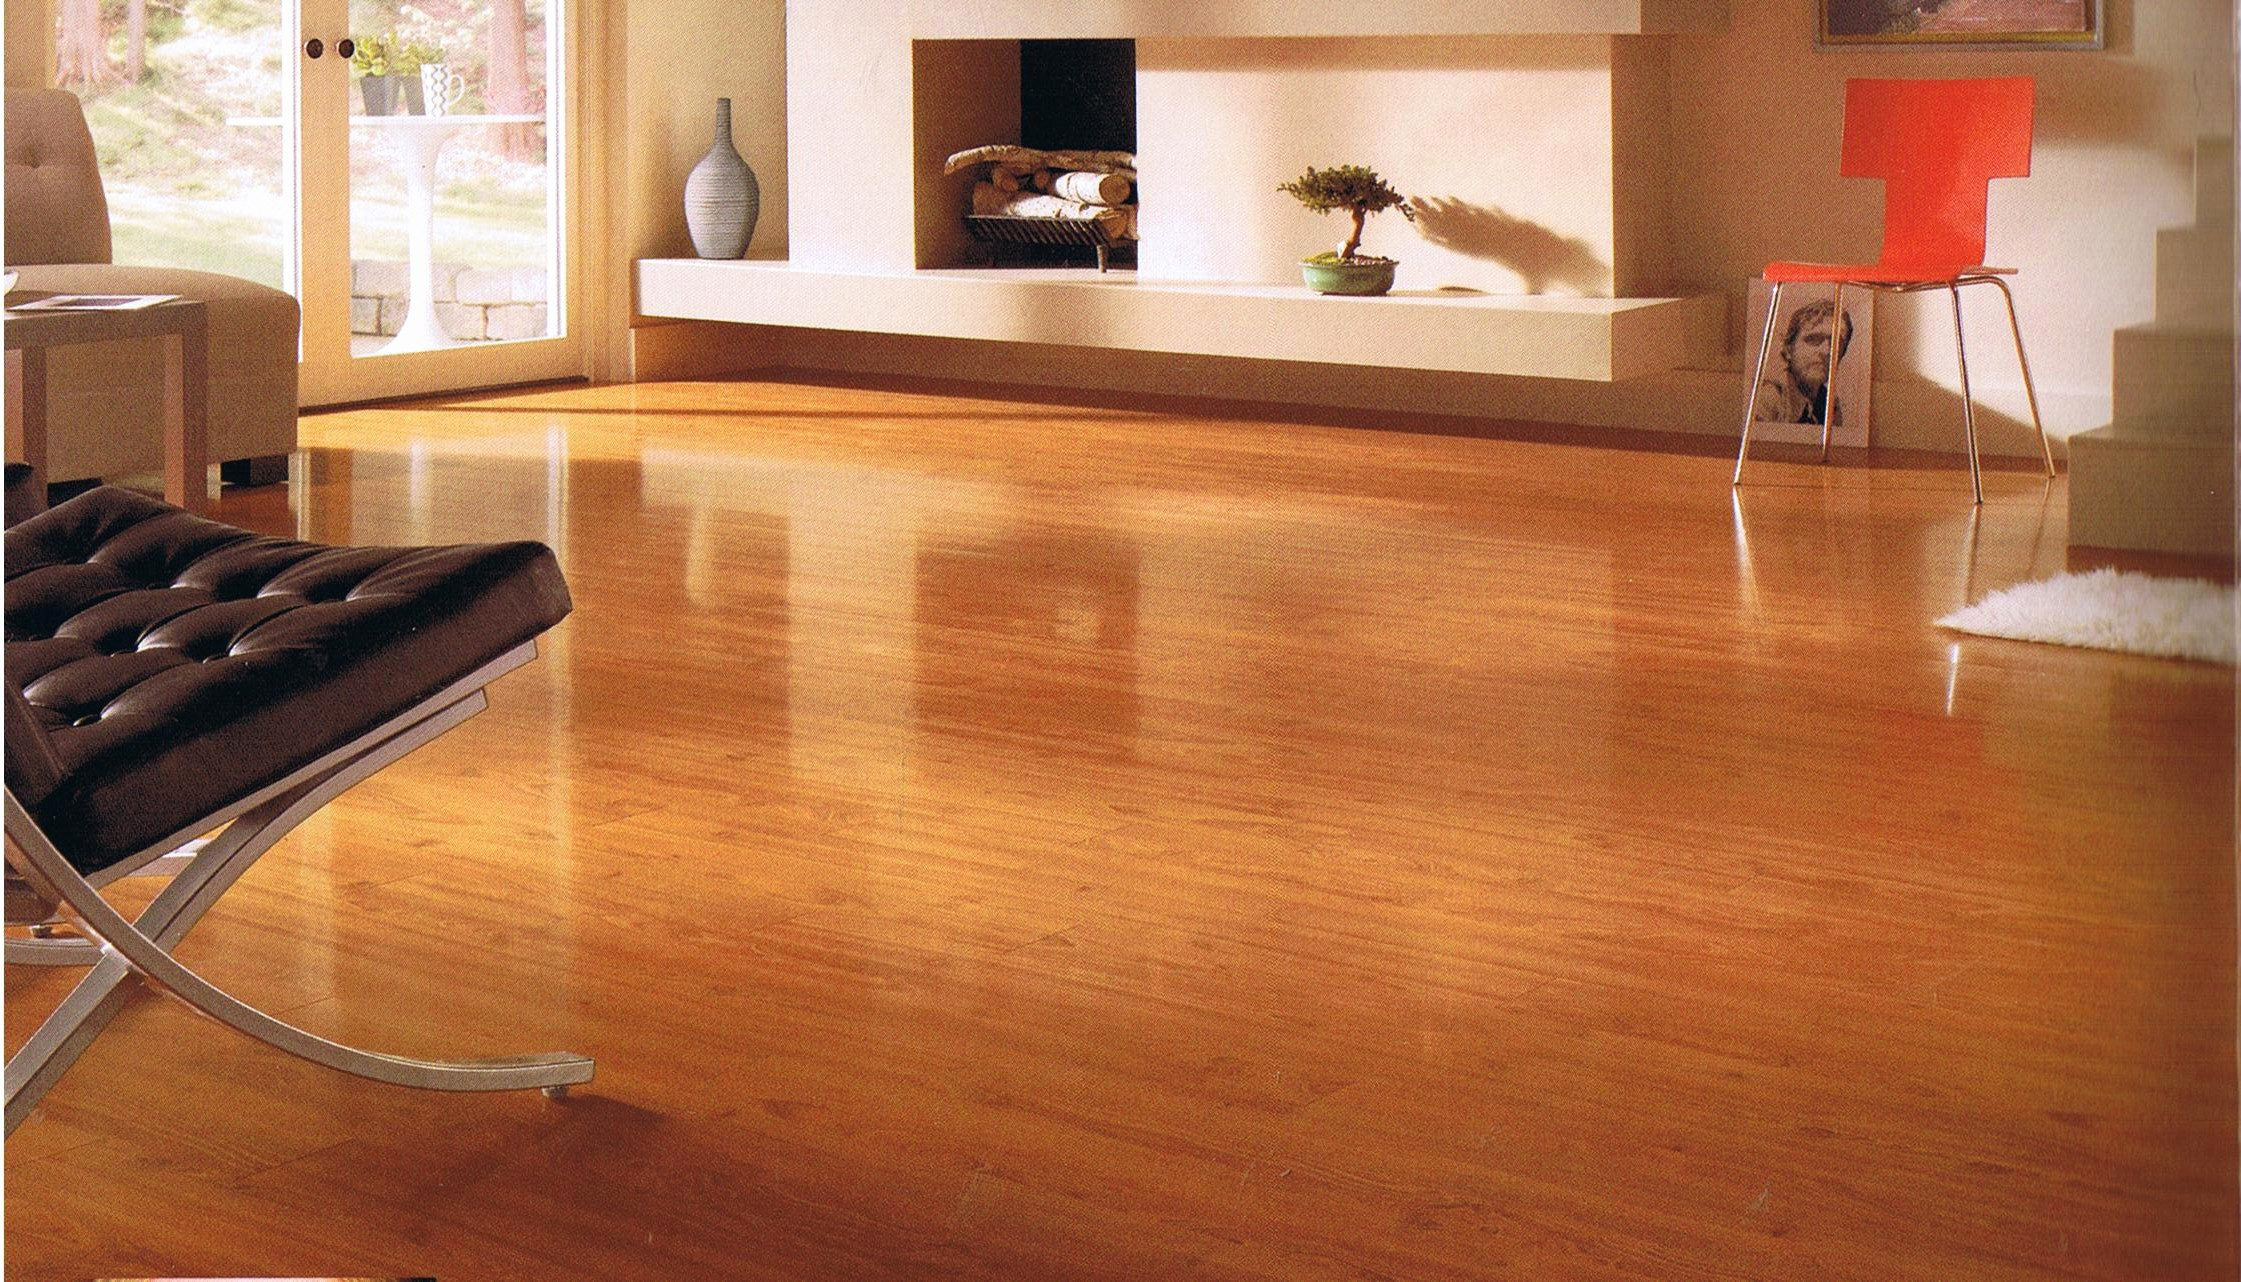 red oak hardwood flooring lowes of laminate floor cutter lowes awesome 50 luxury lowes tile flooring within 50 luxury lowes tile flooring wood look 50 s